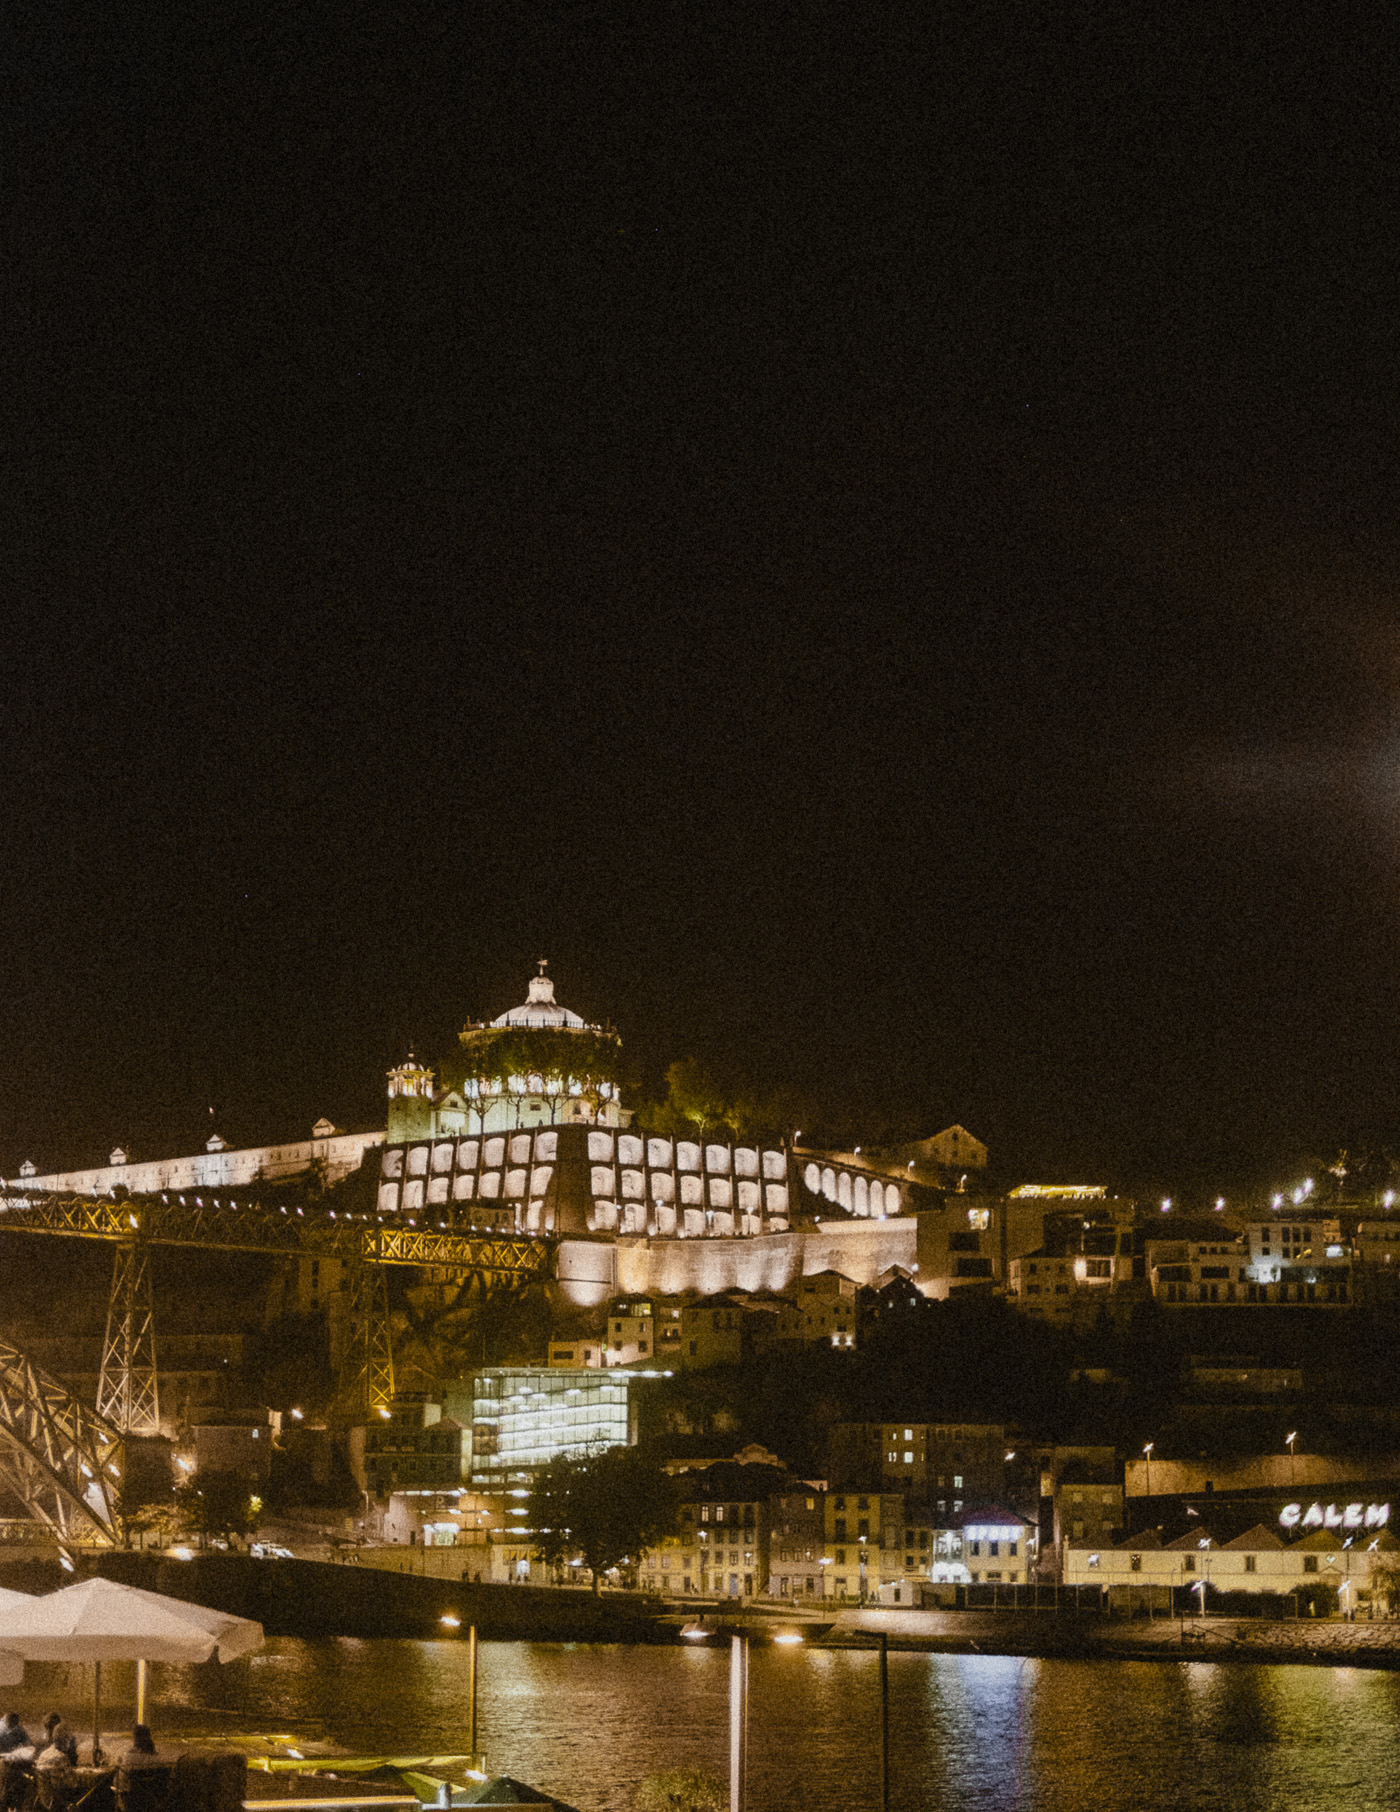 porto-douro-night